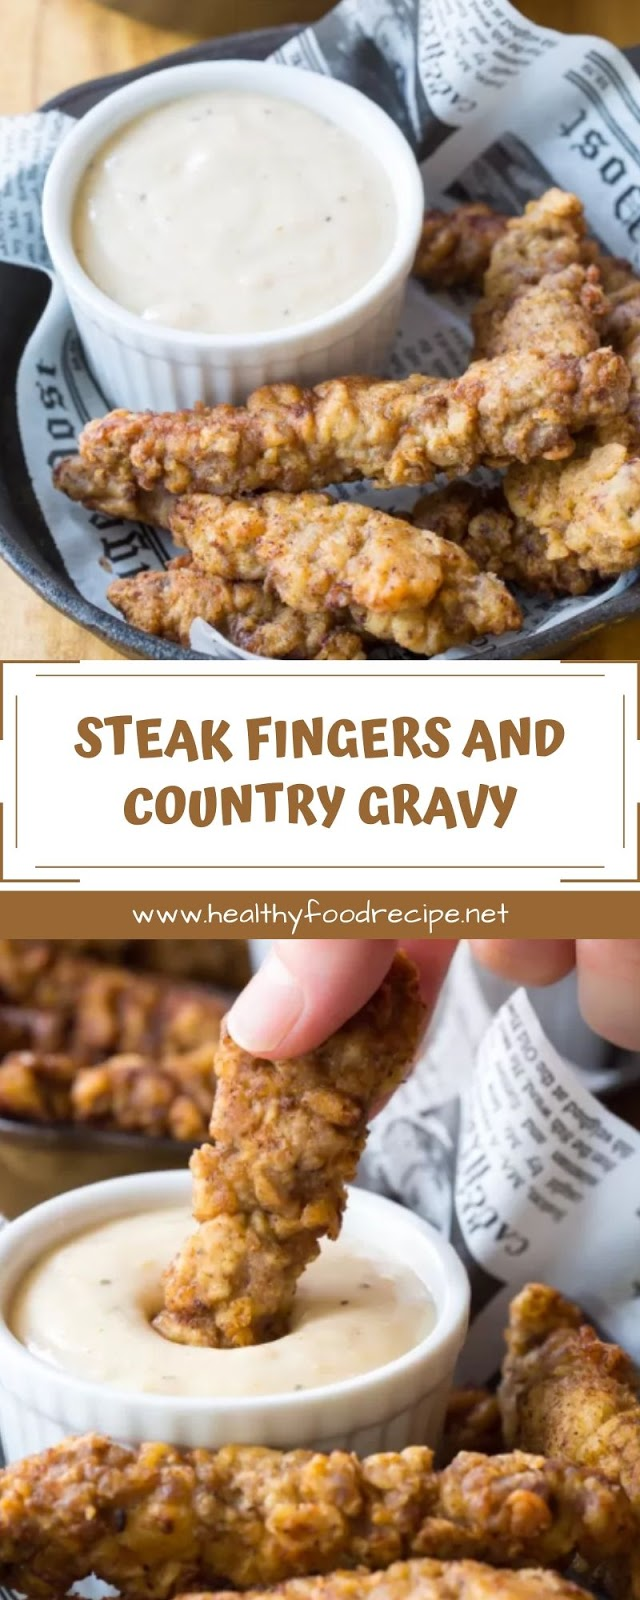 STEAK FINGERS AND COUNTRY GRAVY